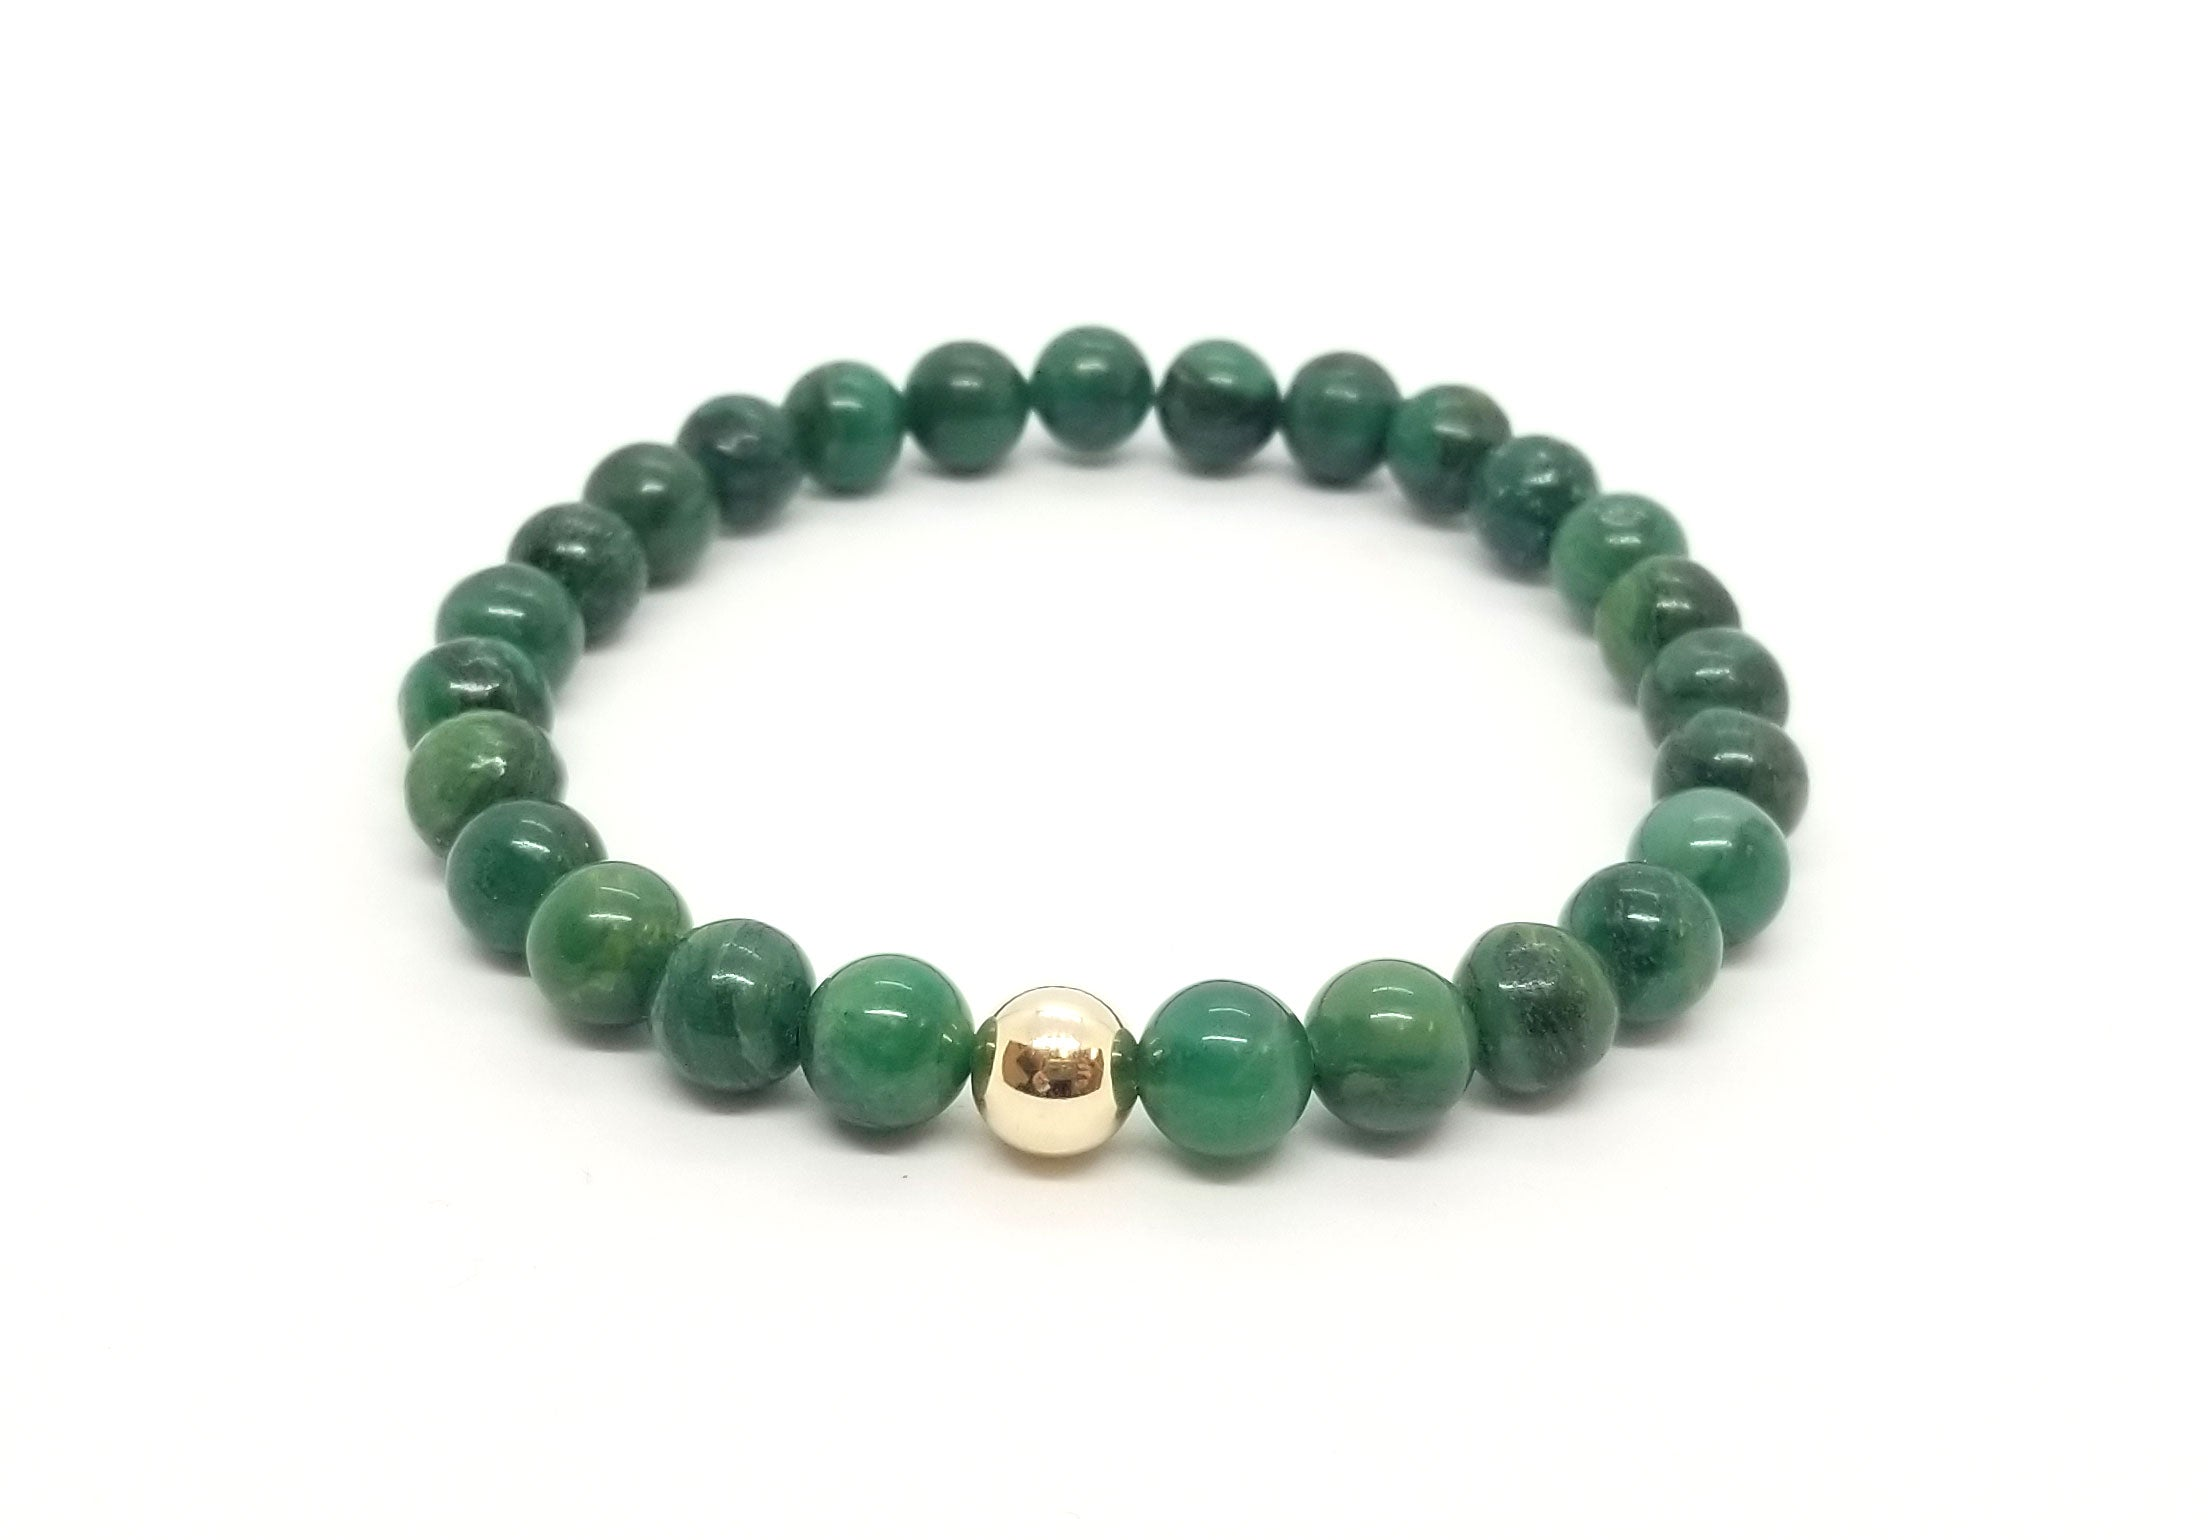 8mm African Jade With Gold Gemstone Bracelet